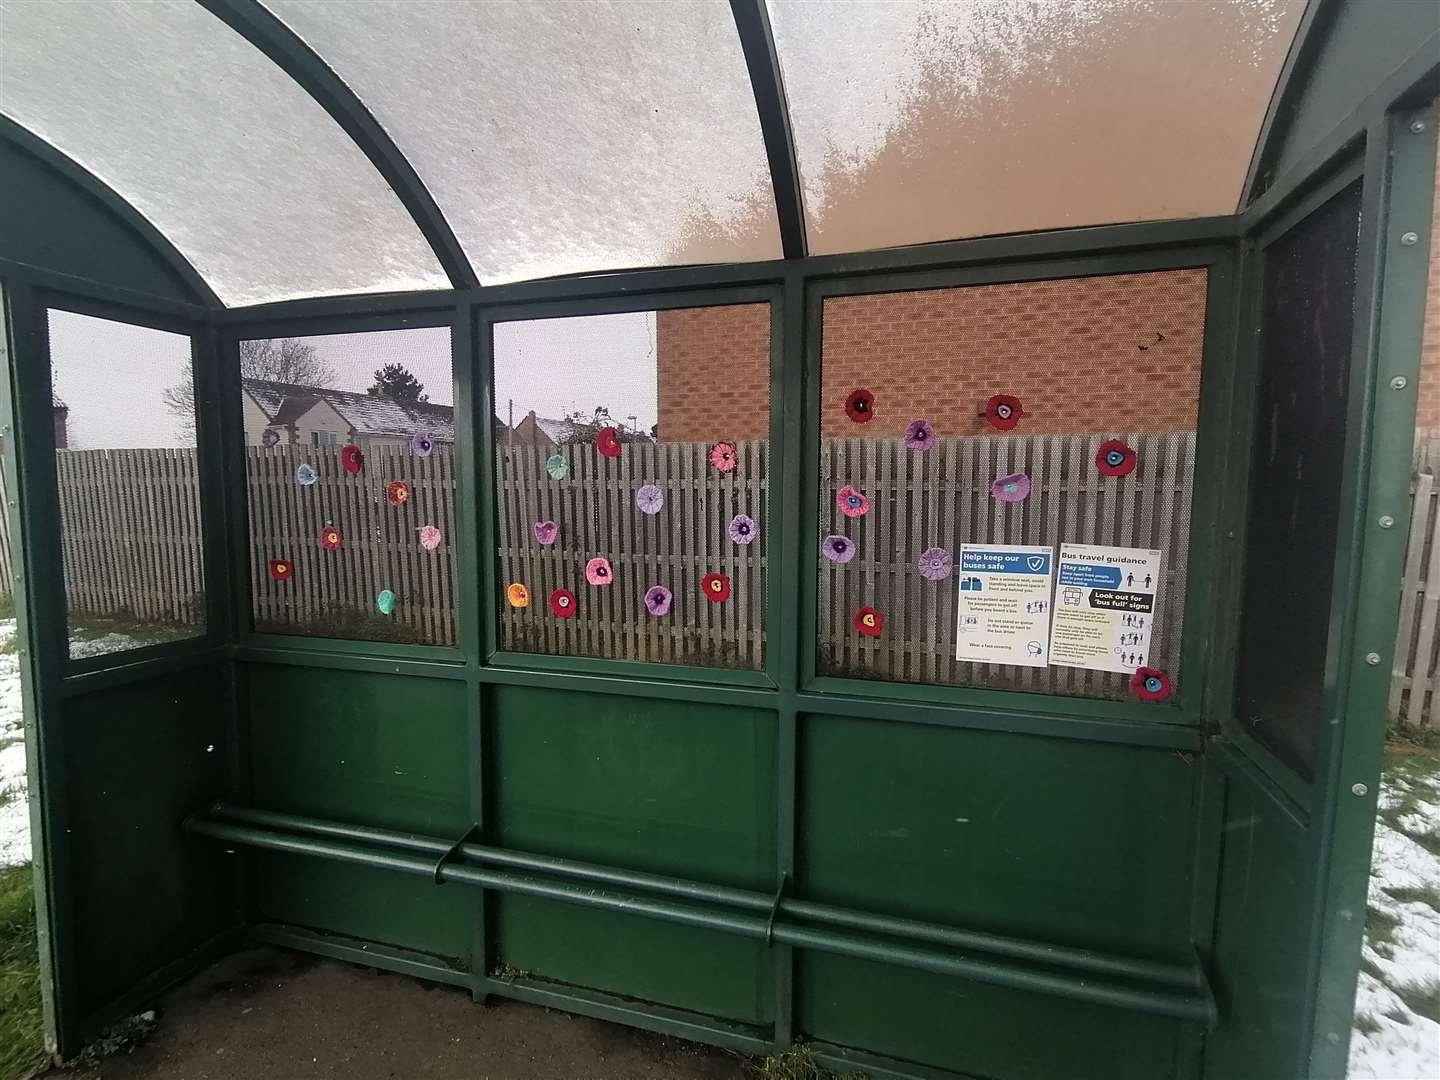 Knitted flowers decorate the bus shelter at Towngate East in Market Deeping. Photo Chris Dixon